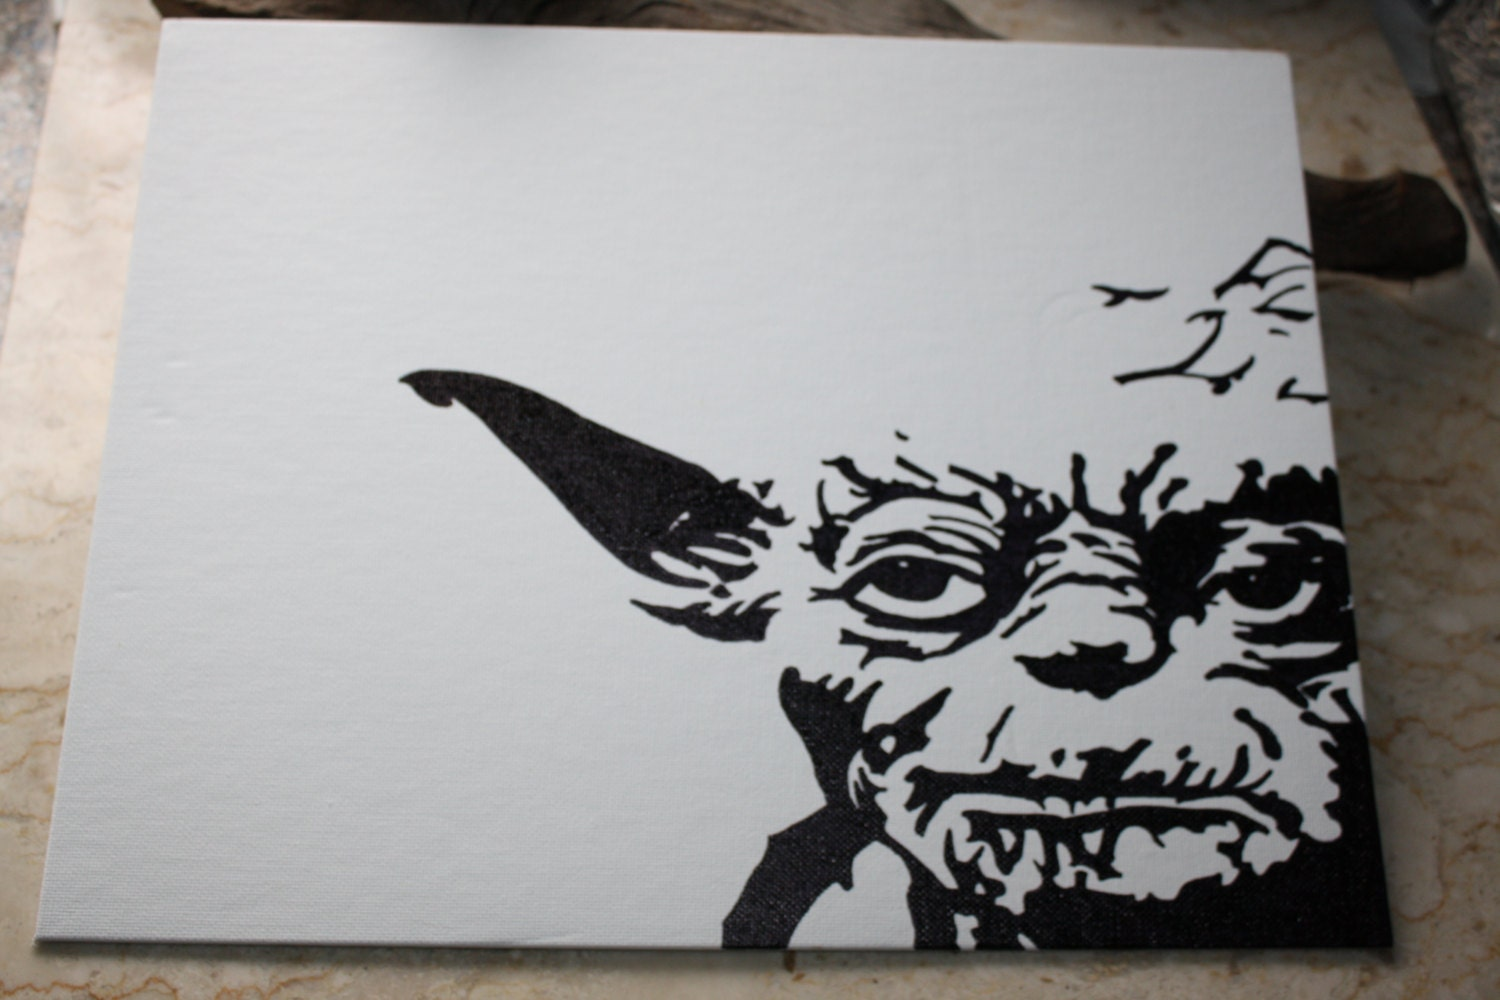 star wars yoda permanent marker drawing on canvas 11 x